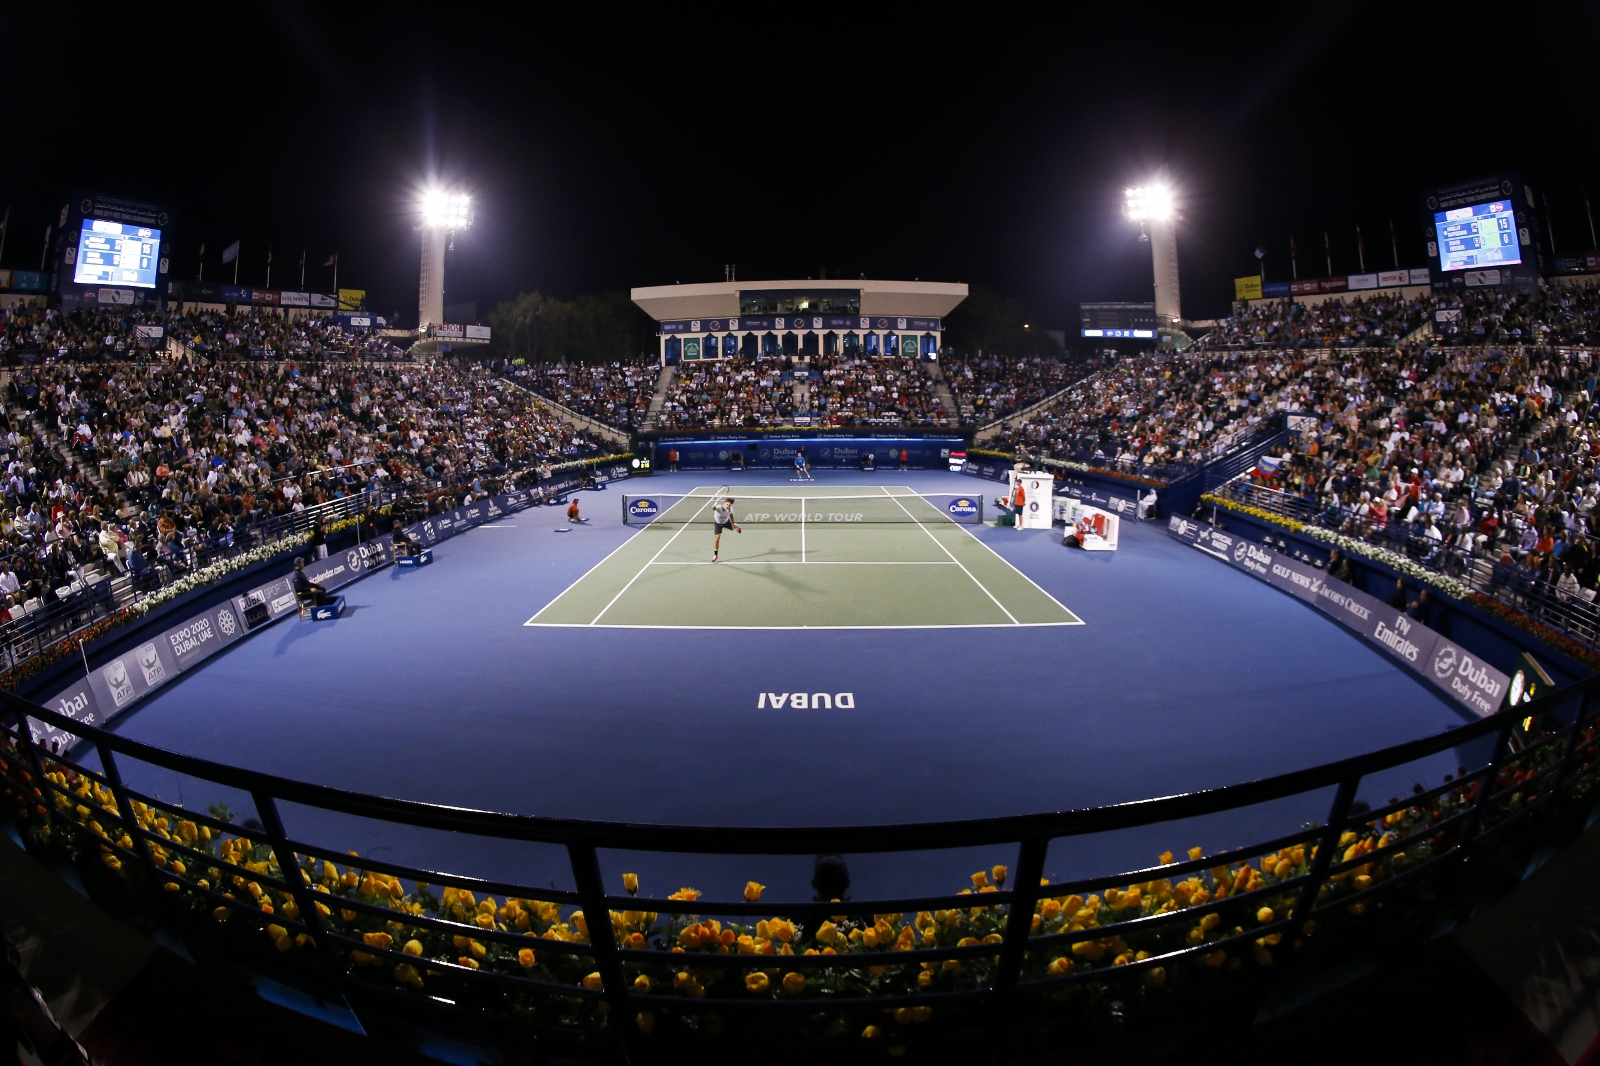 dubai tennis tournament 2013